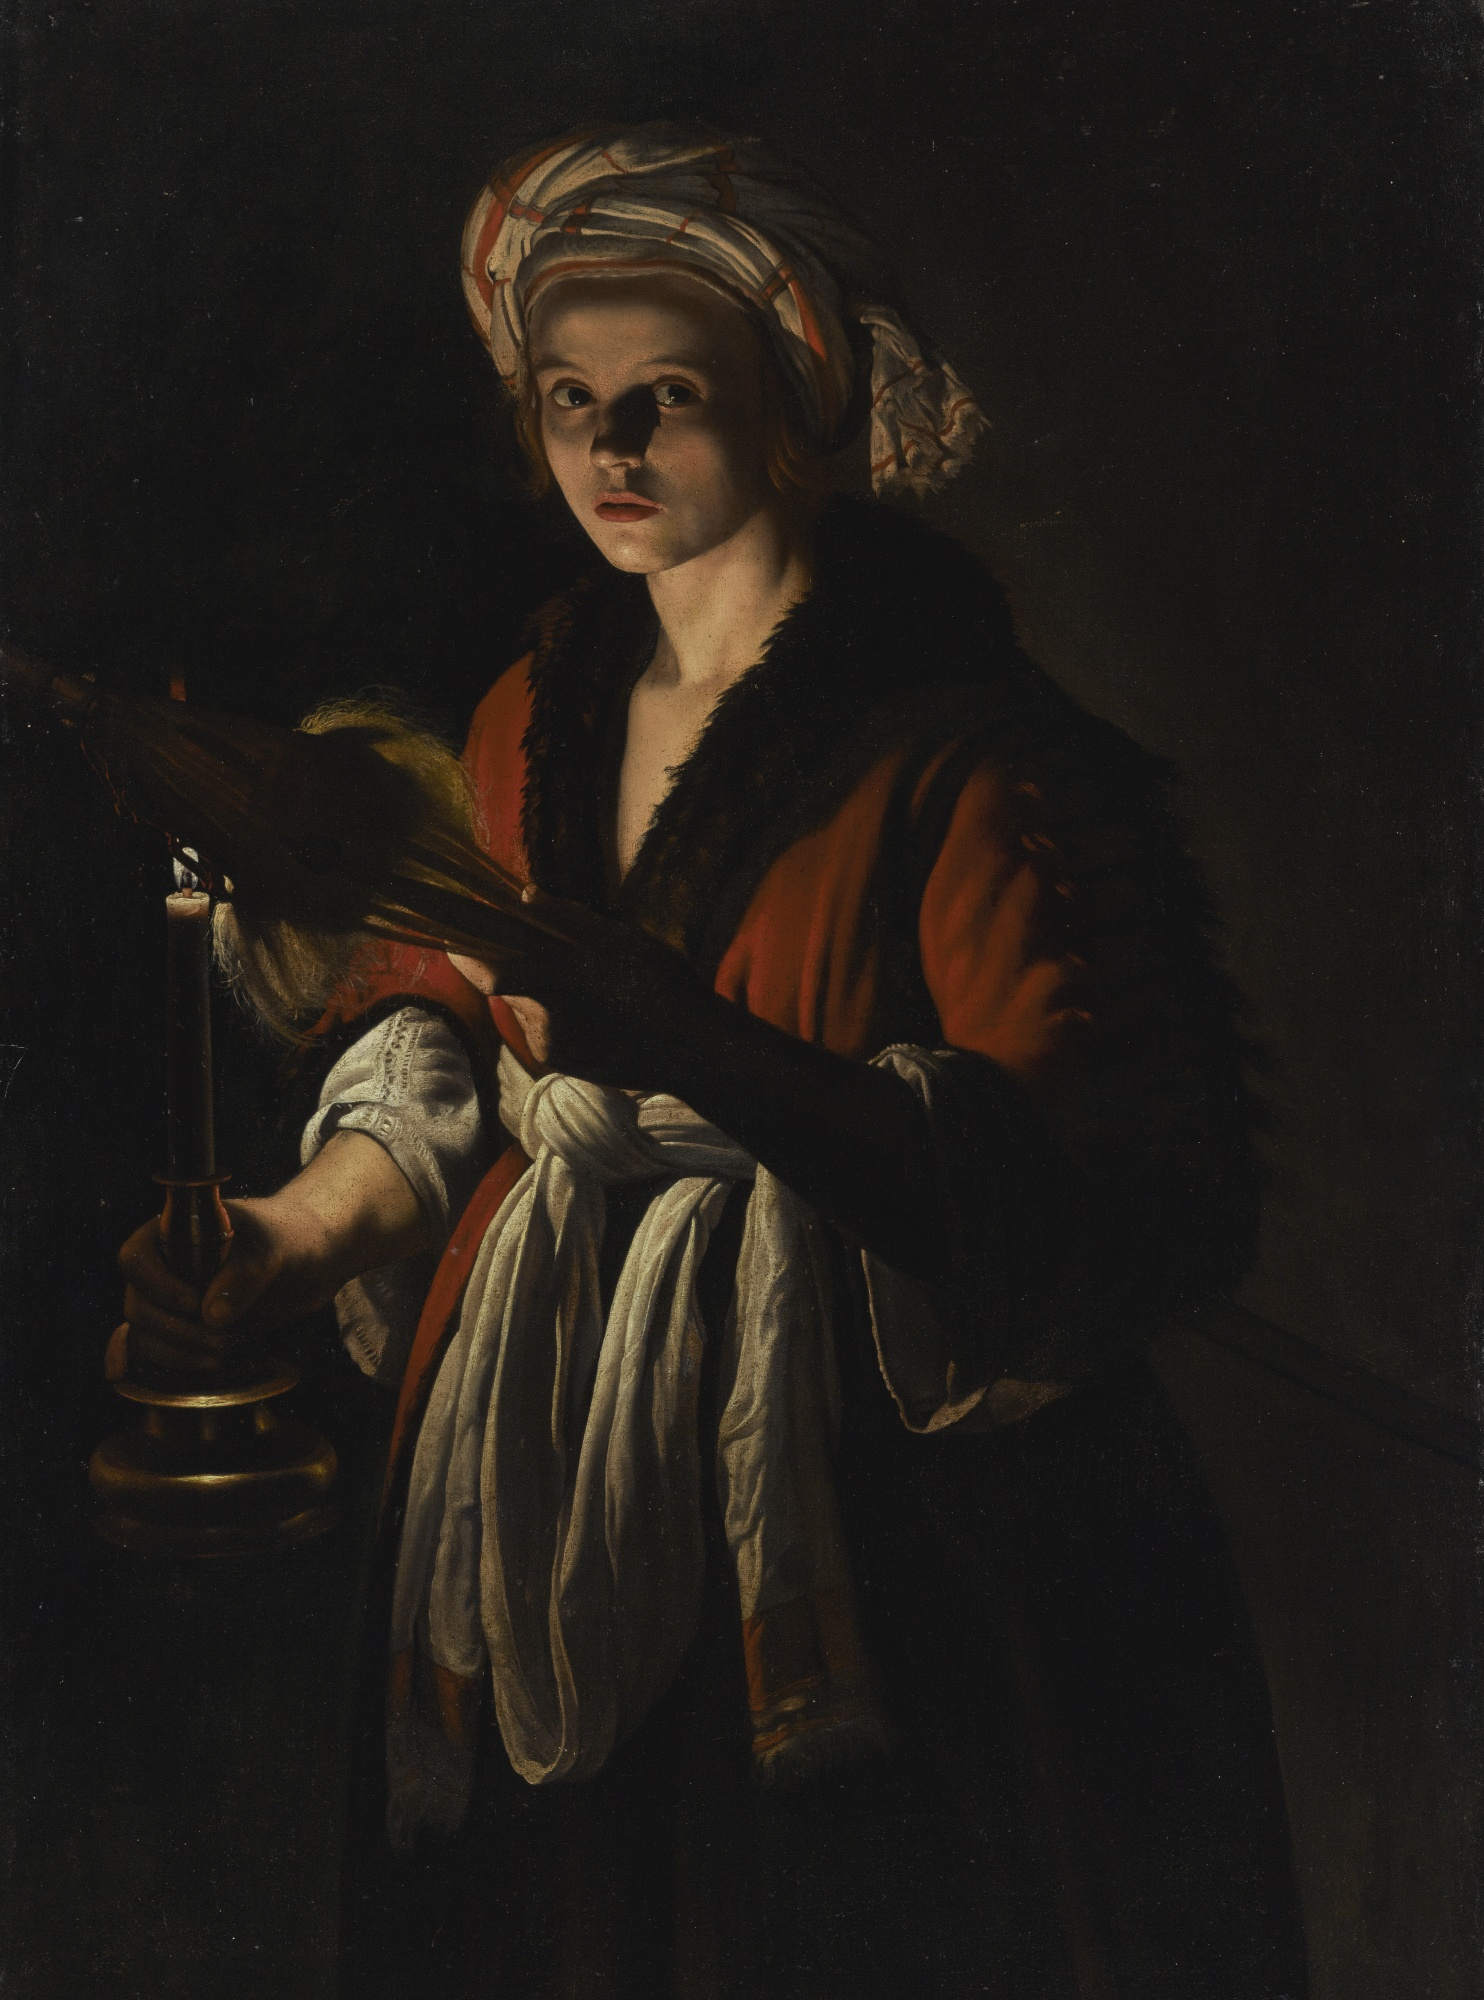 A Young Woman Holding a Distaff before a Lit Candle, by Adam de Coster